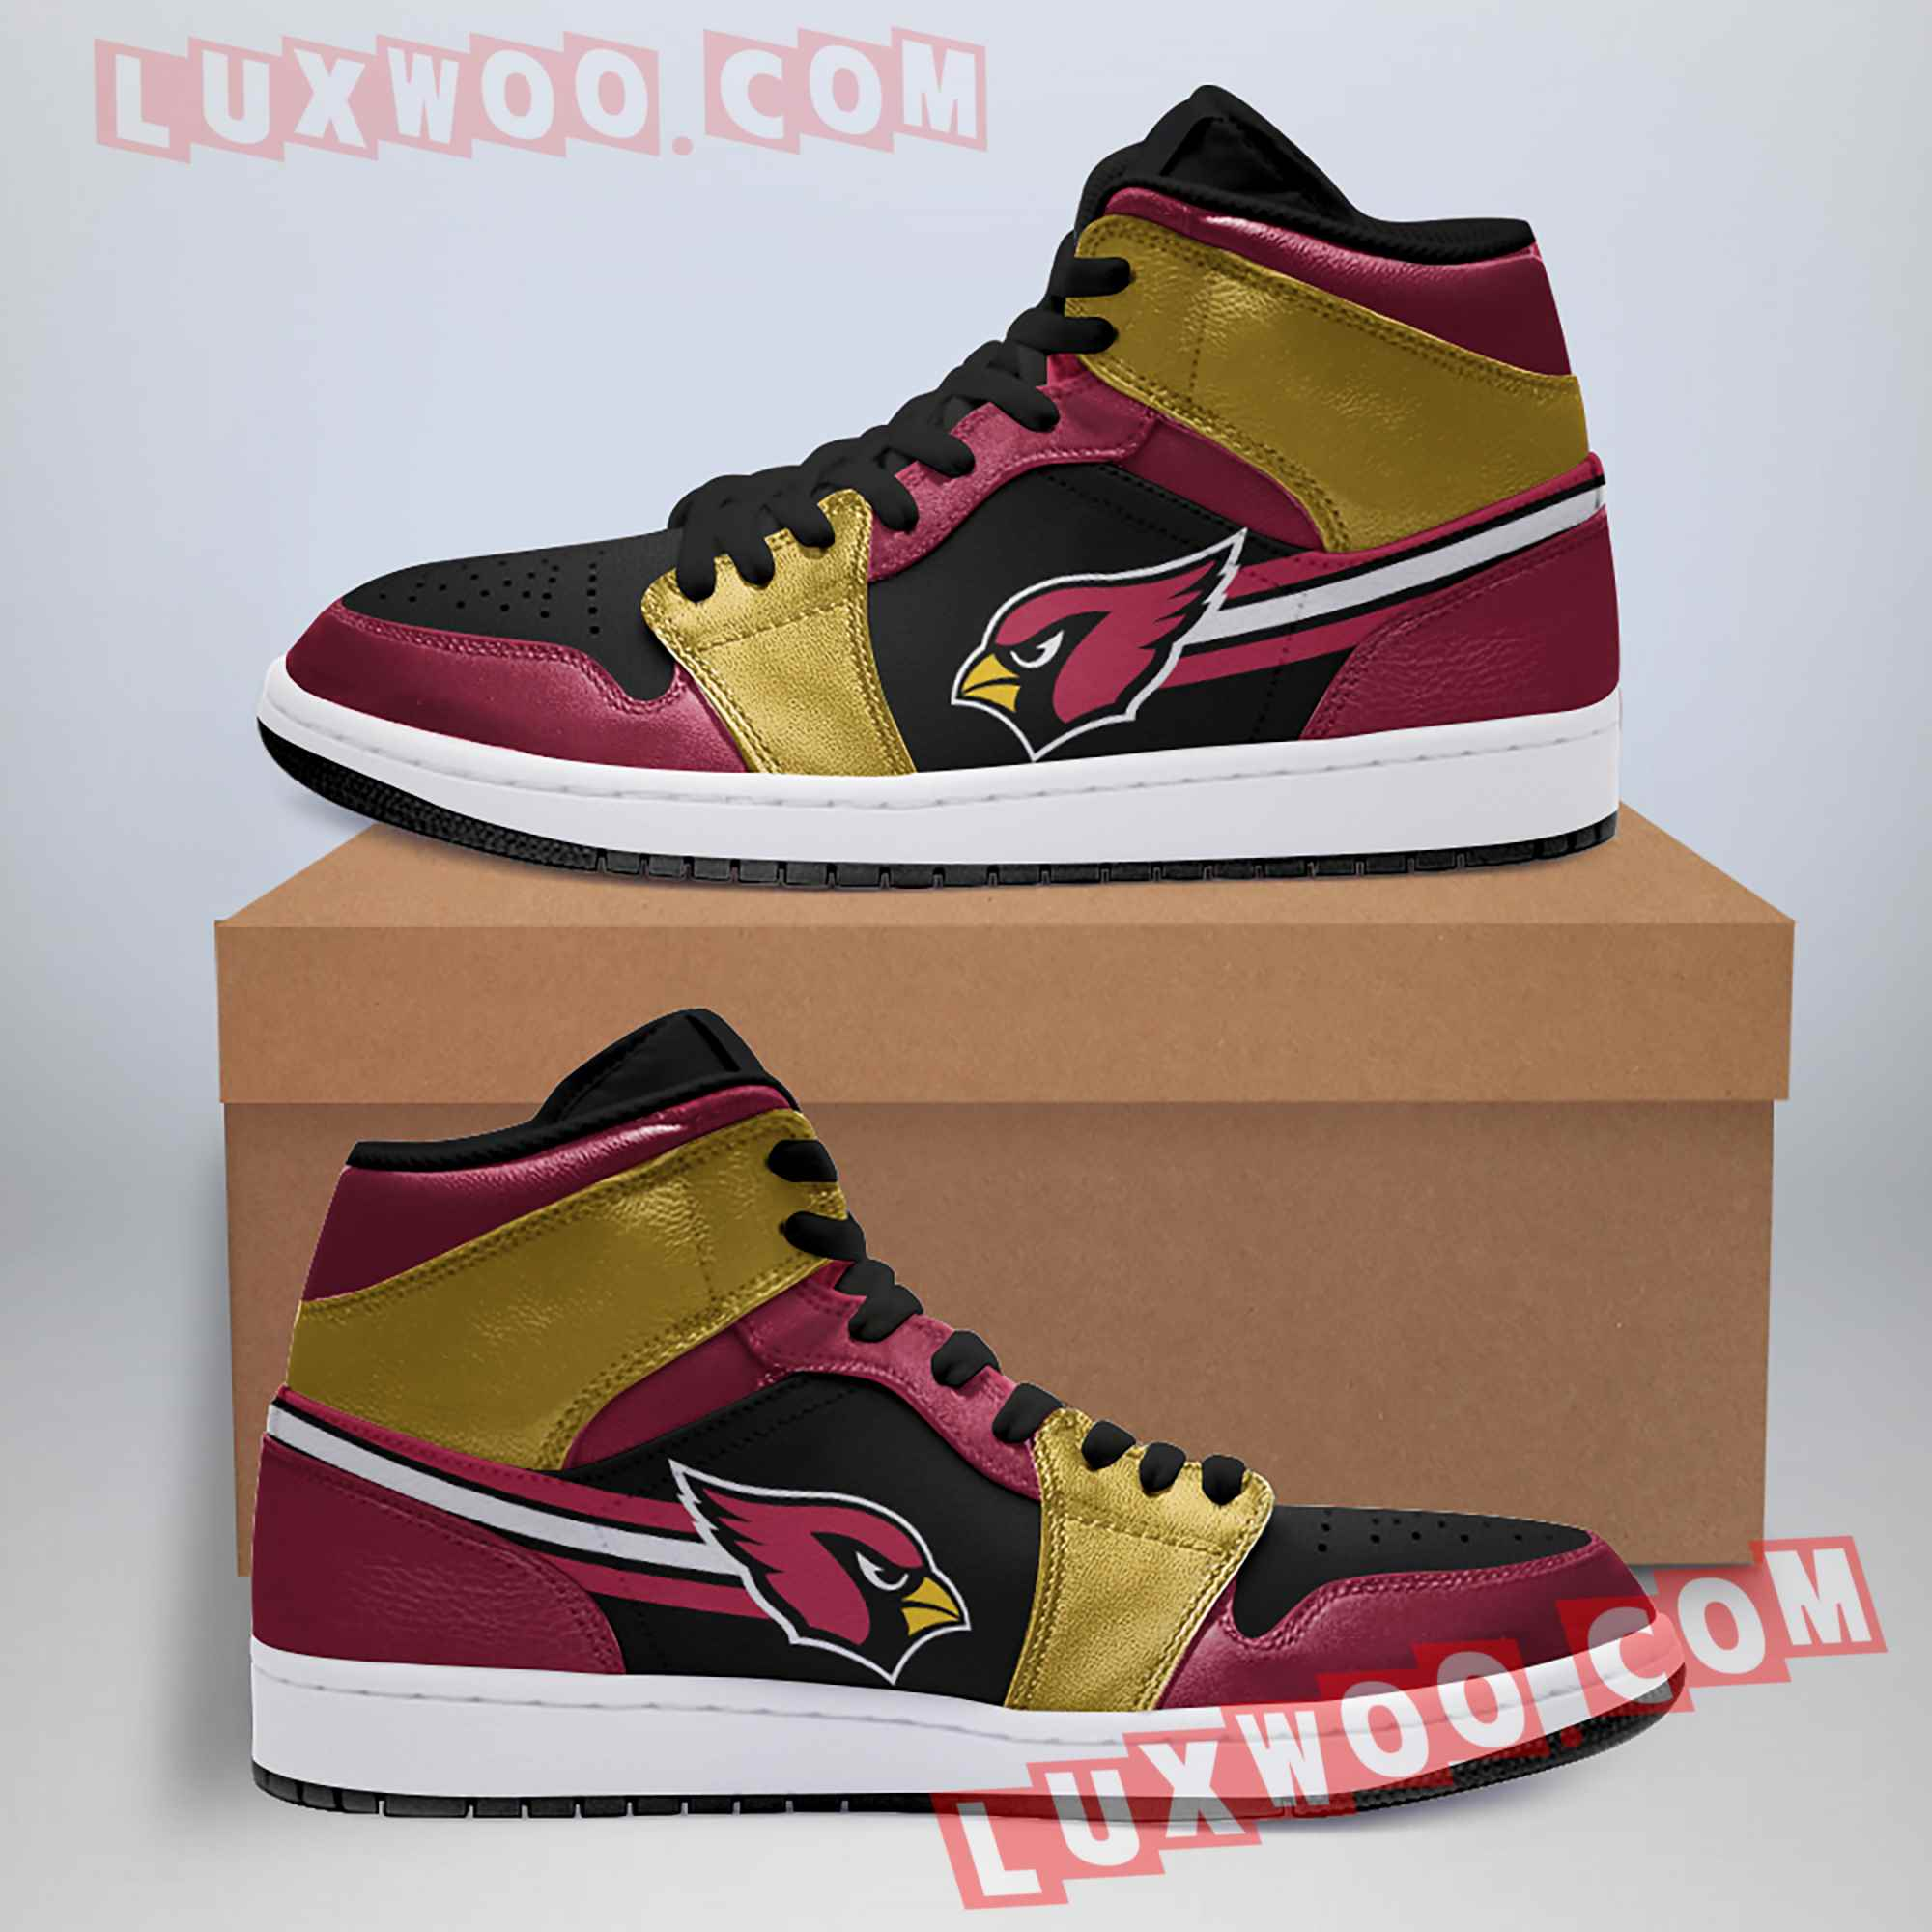 Arizona Cardinals Nfl Air Jordan 1 Custom Shoes Sneaker V1